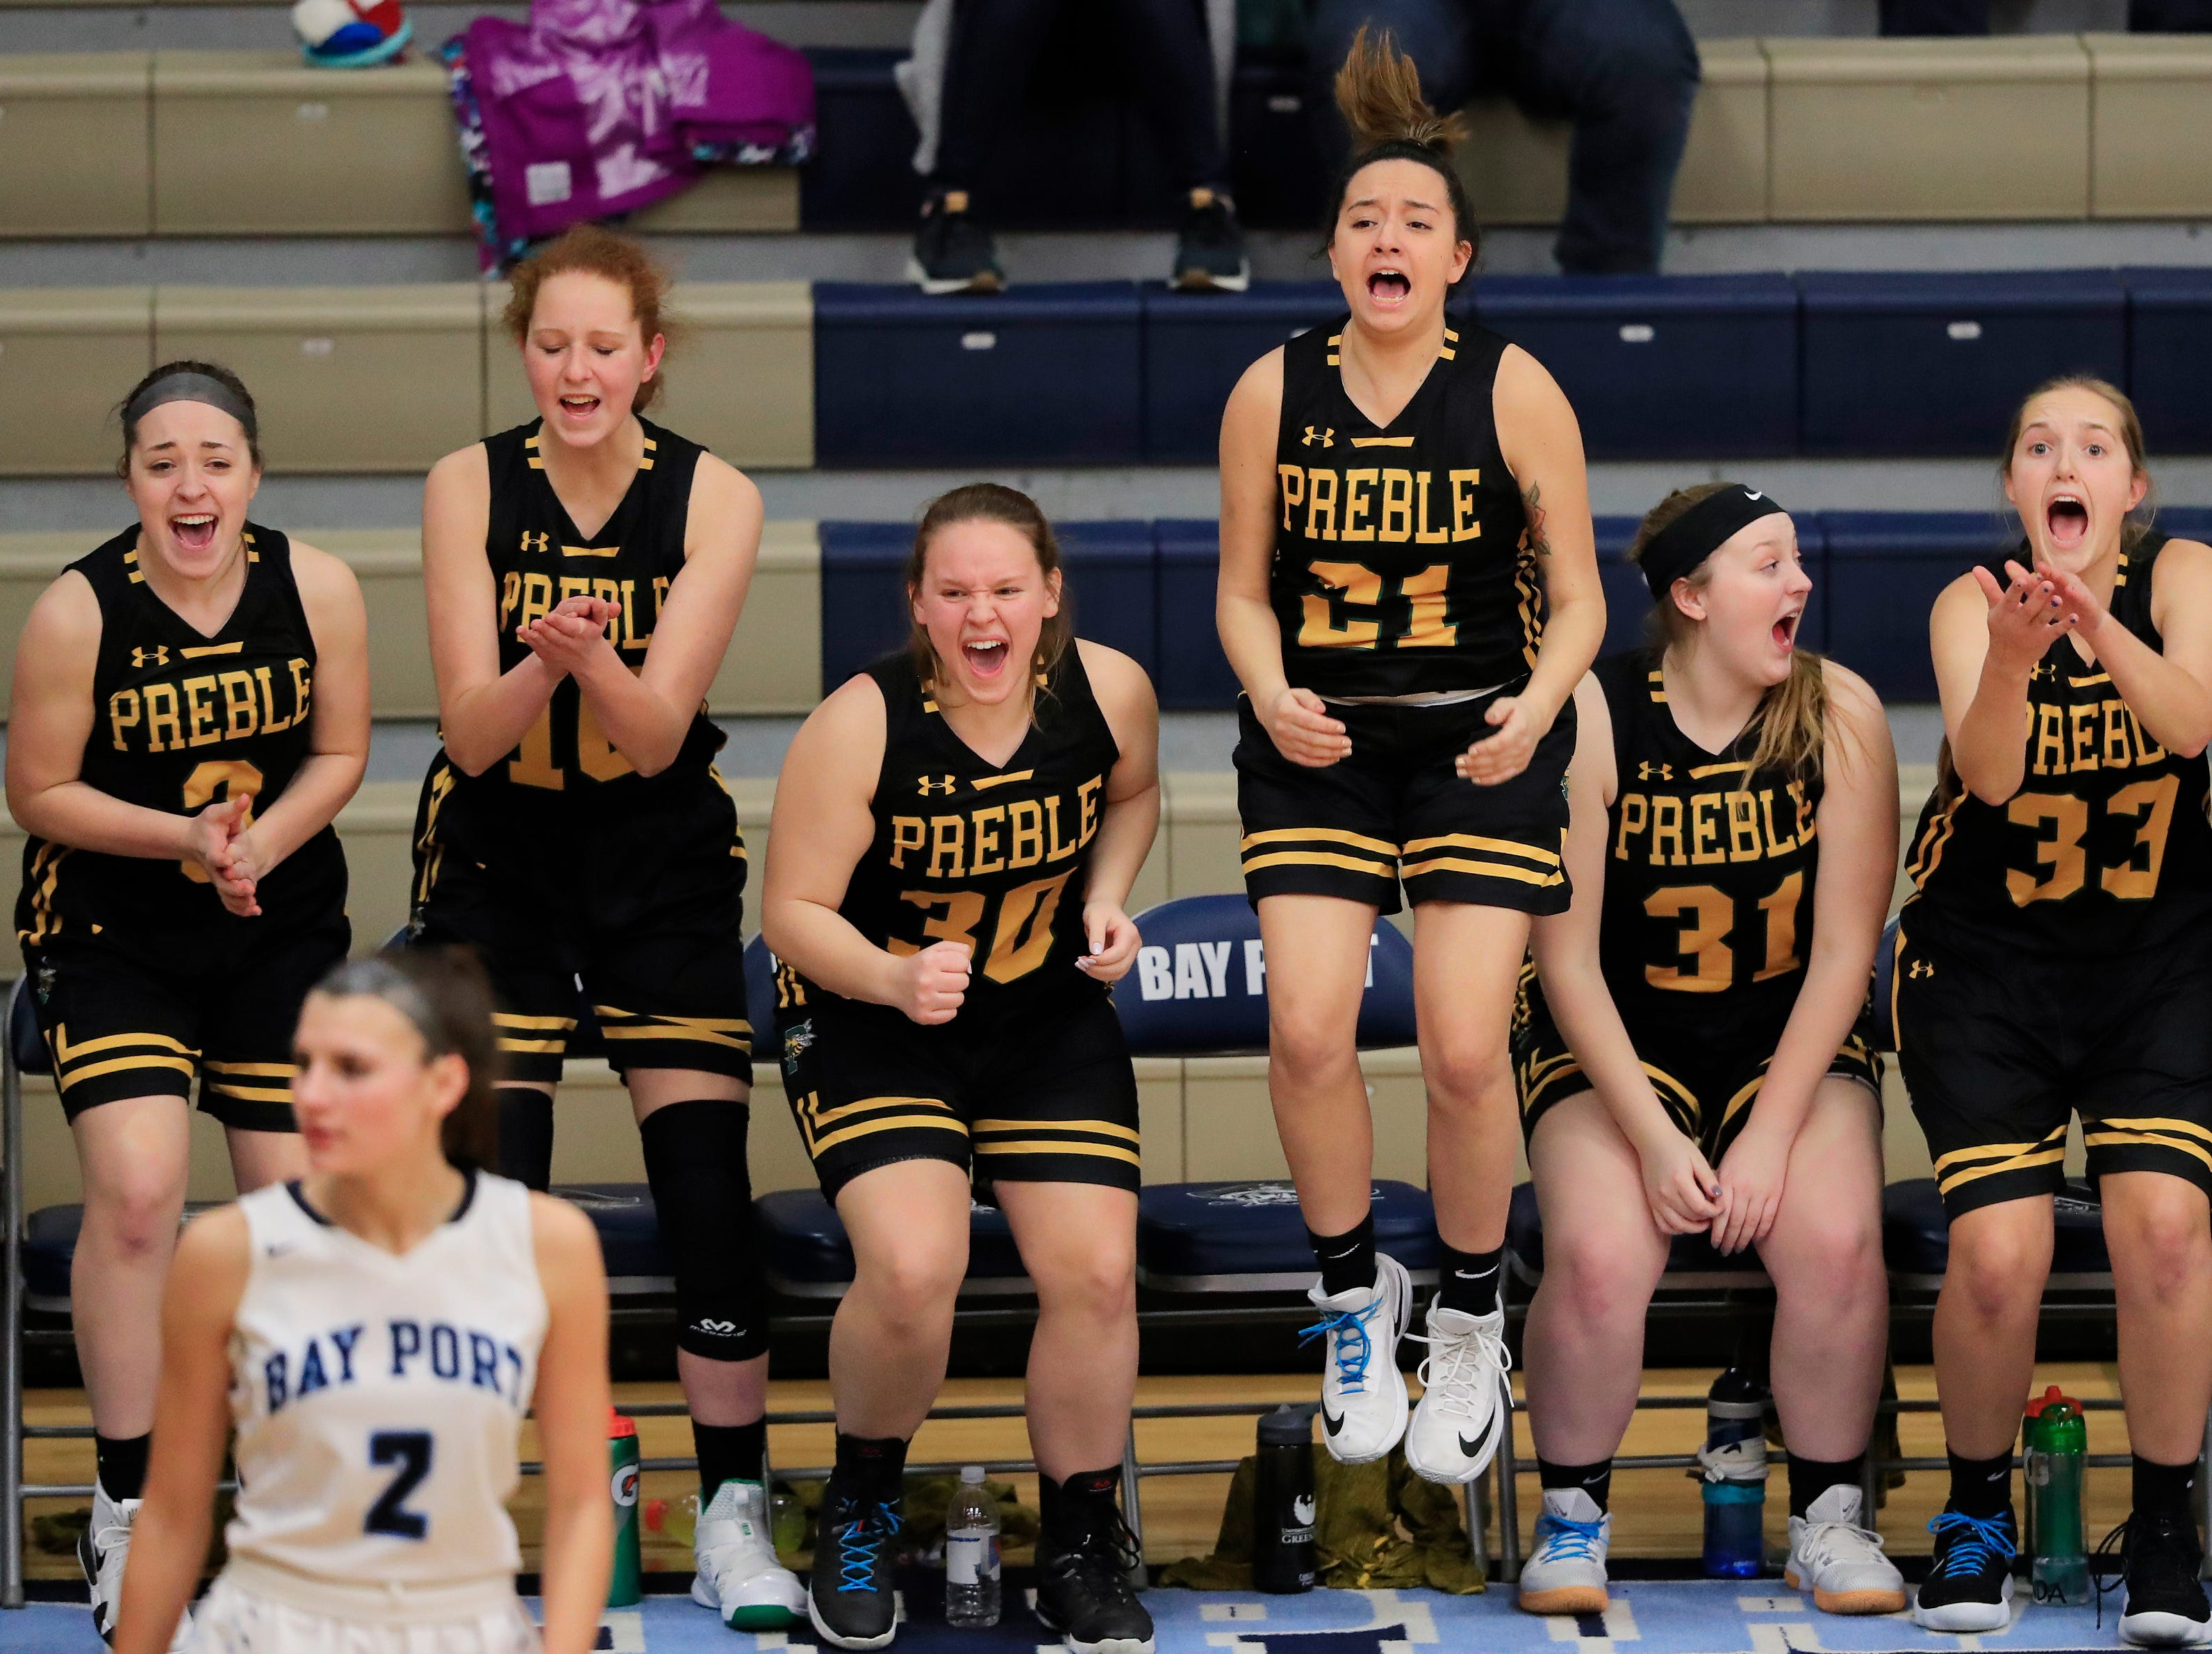 Green Bay Preble players celebrate from the bench after a basket in the final minutes against Bay Port in a FRCC girls basketball game at Bay Port high school on Friday, February 8, 2019 in Suamico, Wis.